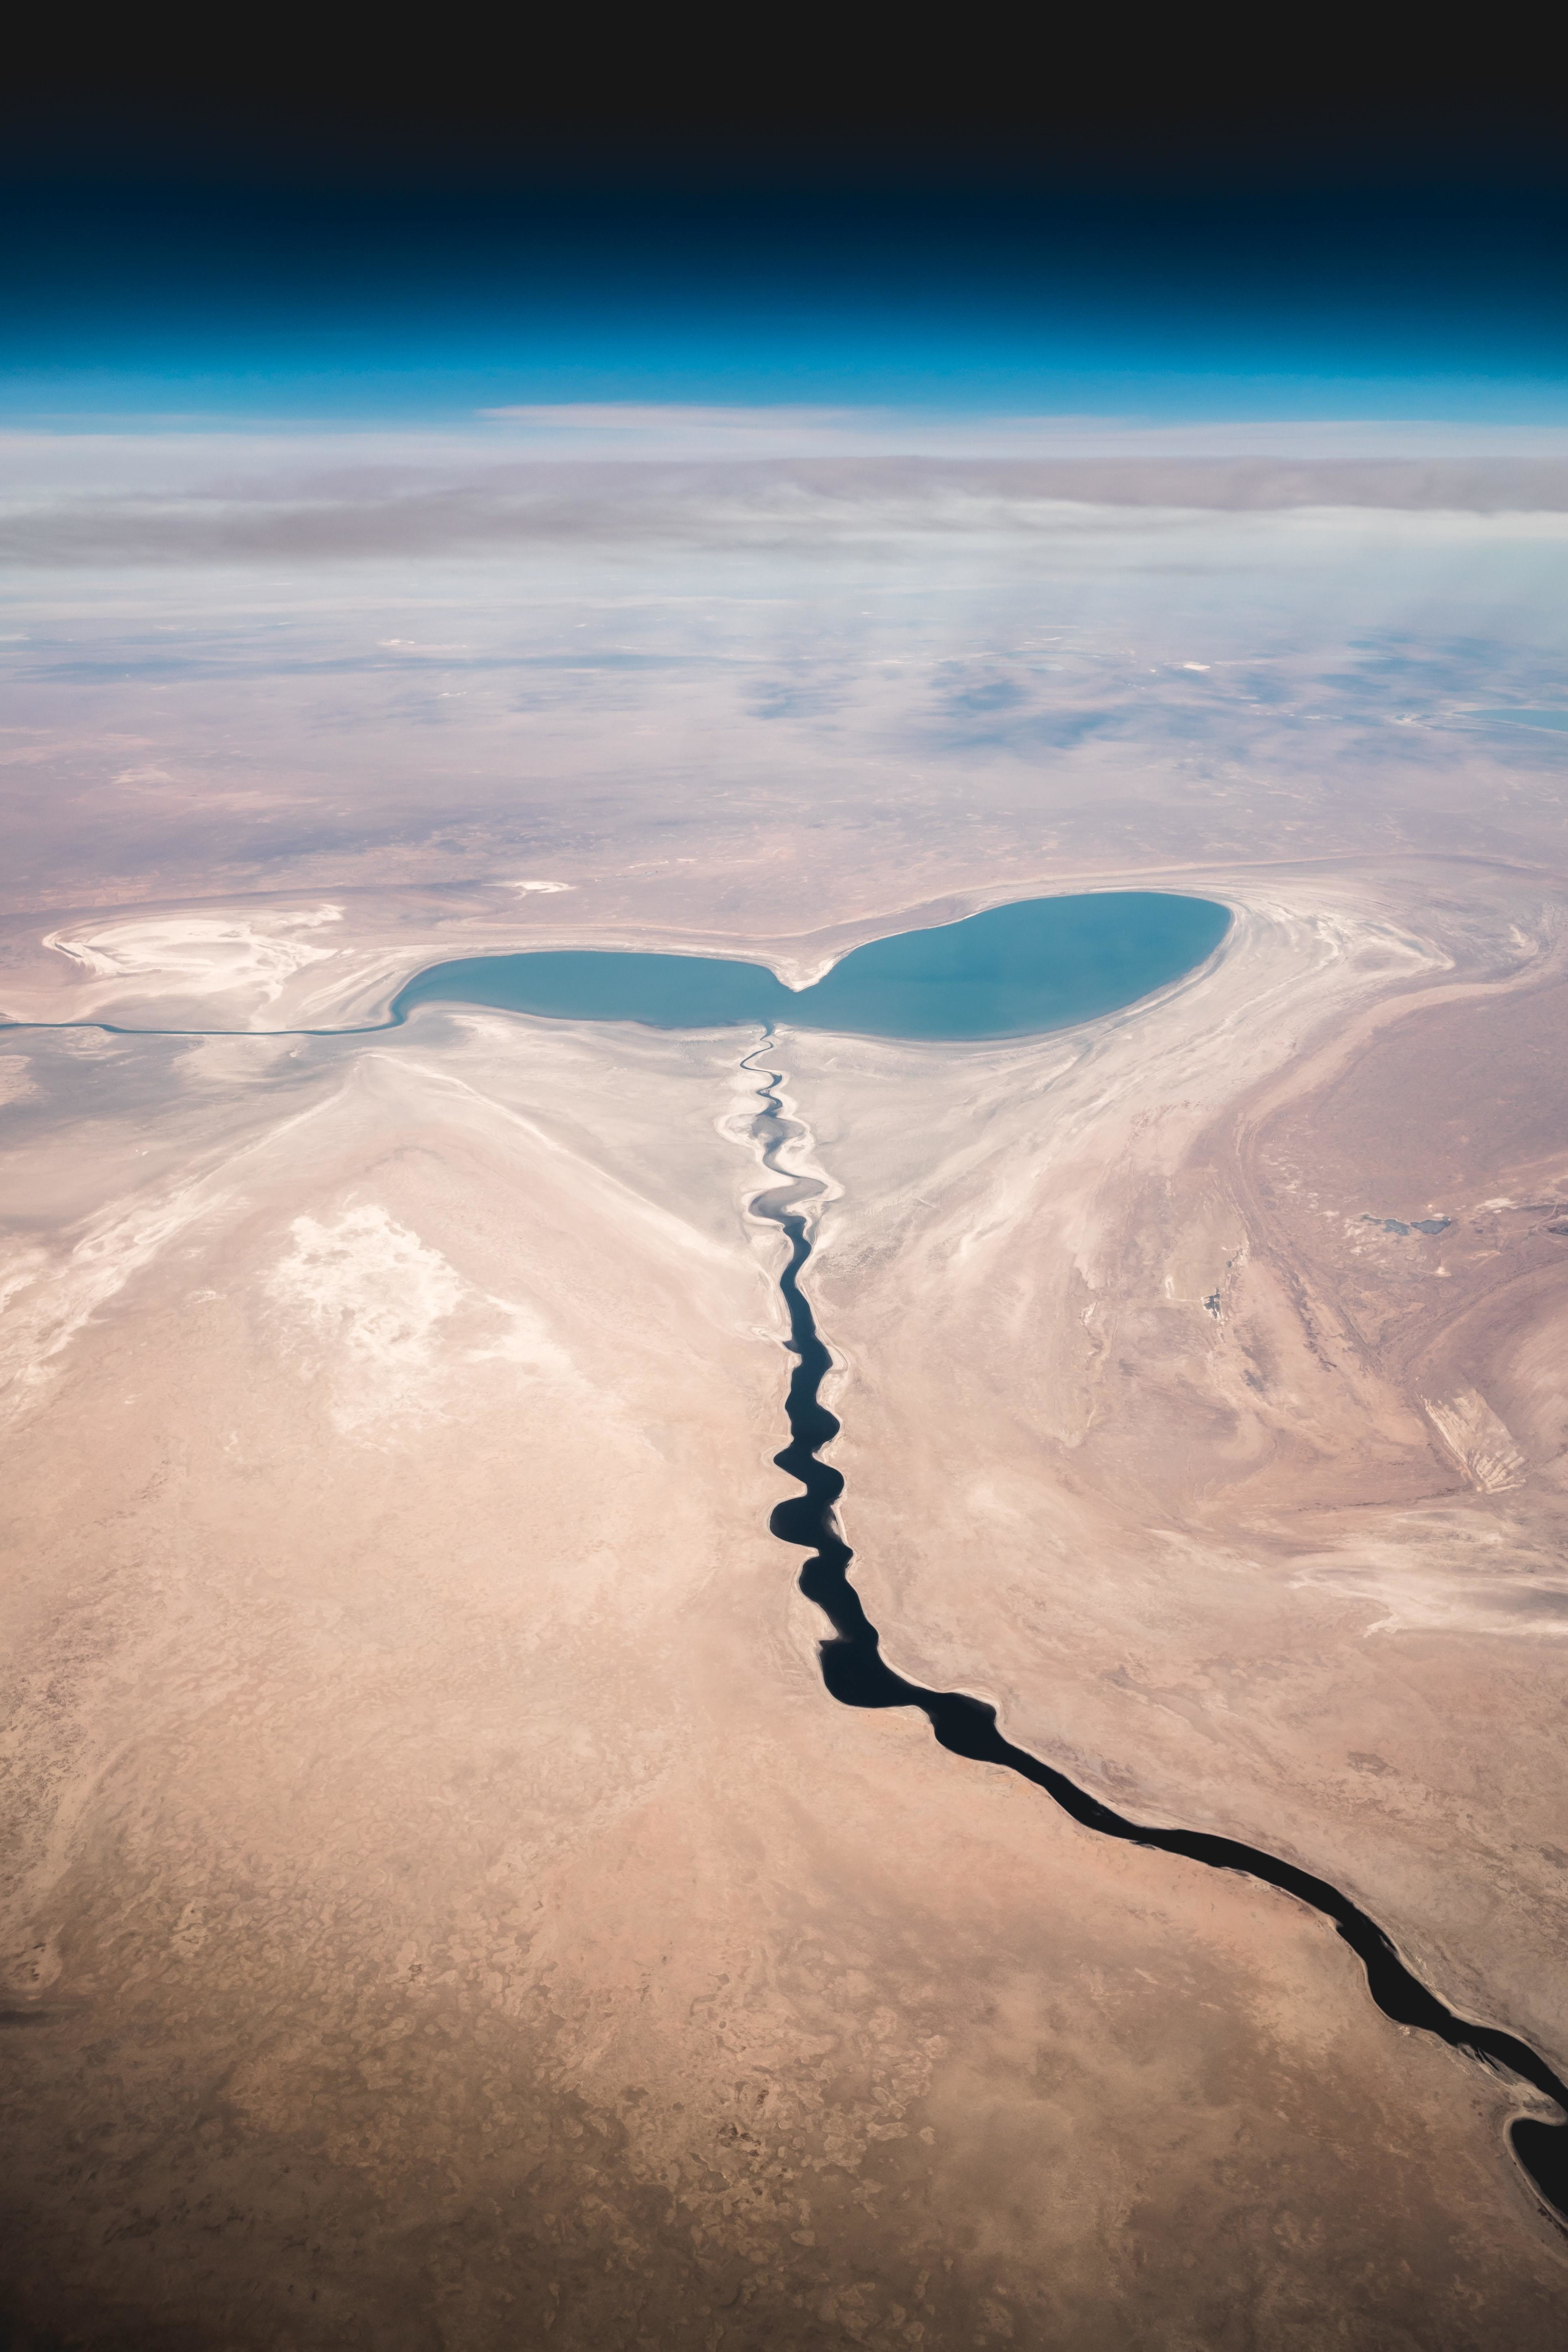 The Aral Sea is a case study in how different SDGs can come into conflict